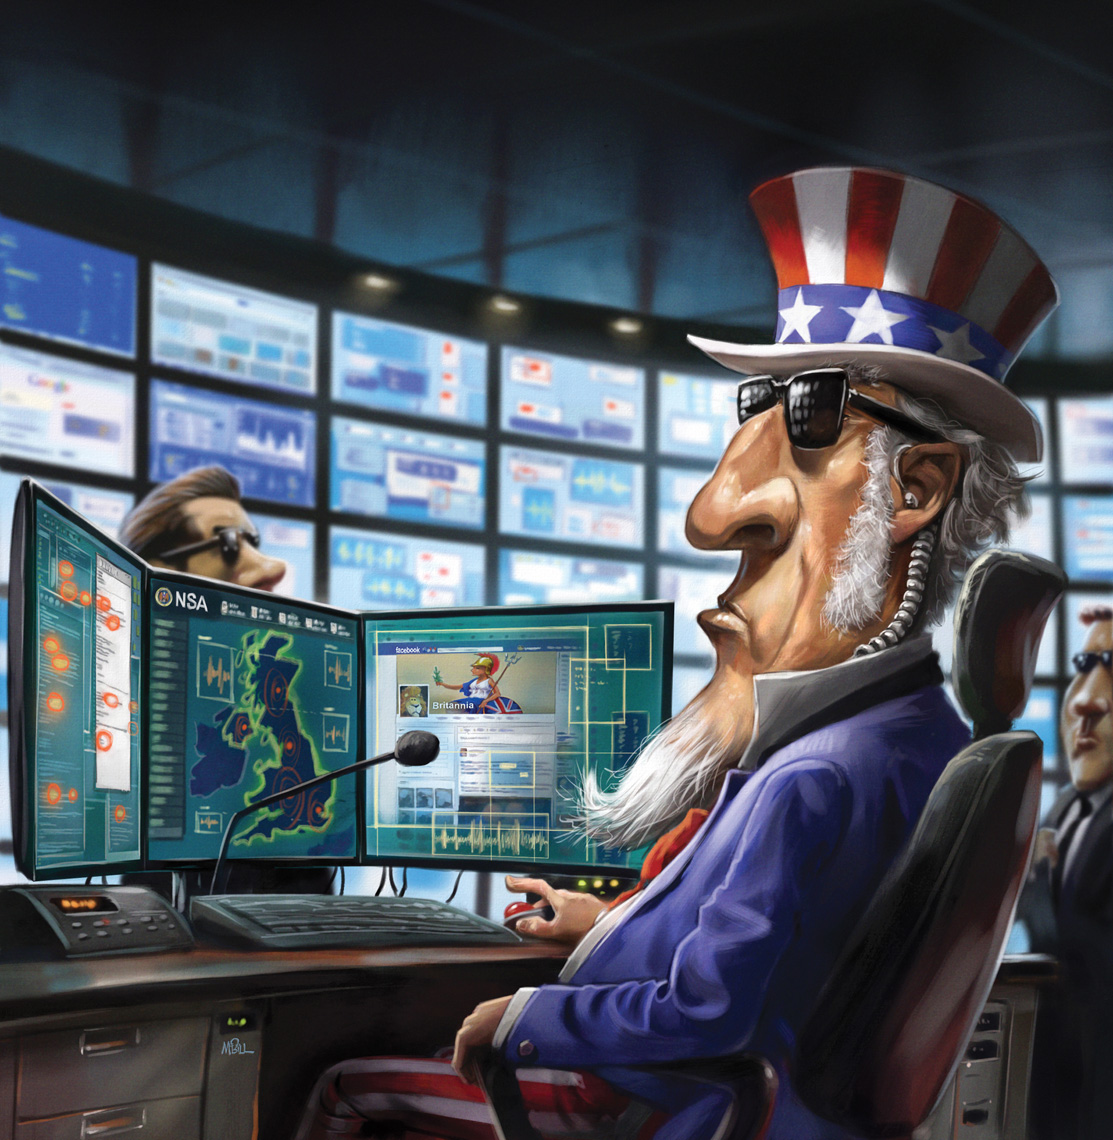 mcwilliam_NSA-uncle-sam-spying.jpg